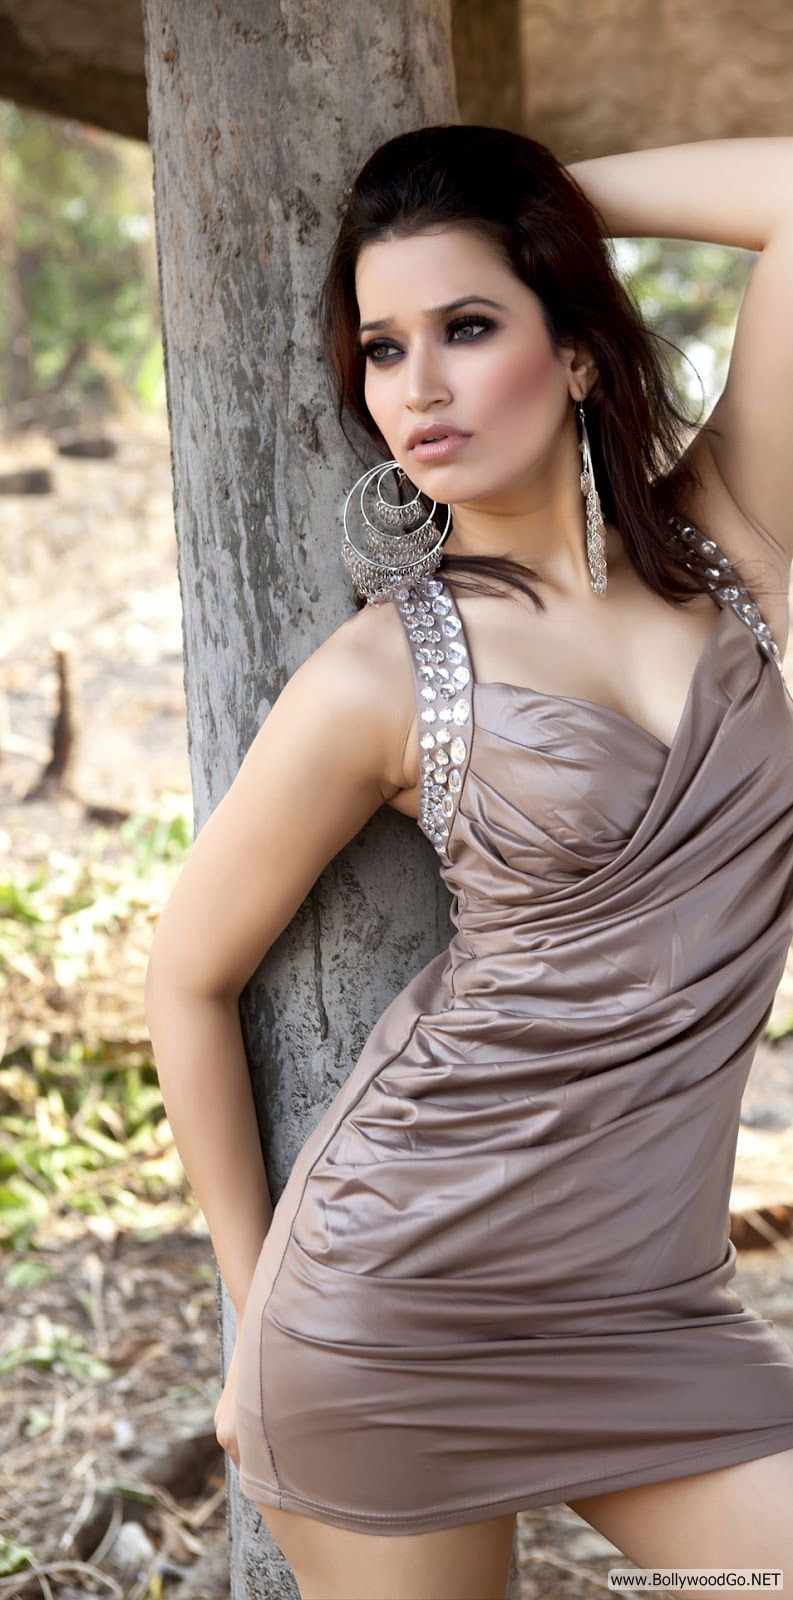 Jiya Chauhan Hot Pic -  Jiya Chauhan Hot Pics - Photoshoot 2012